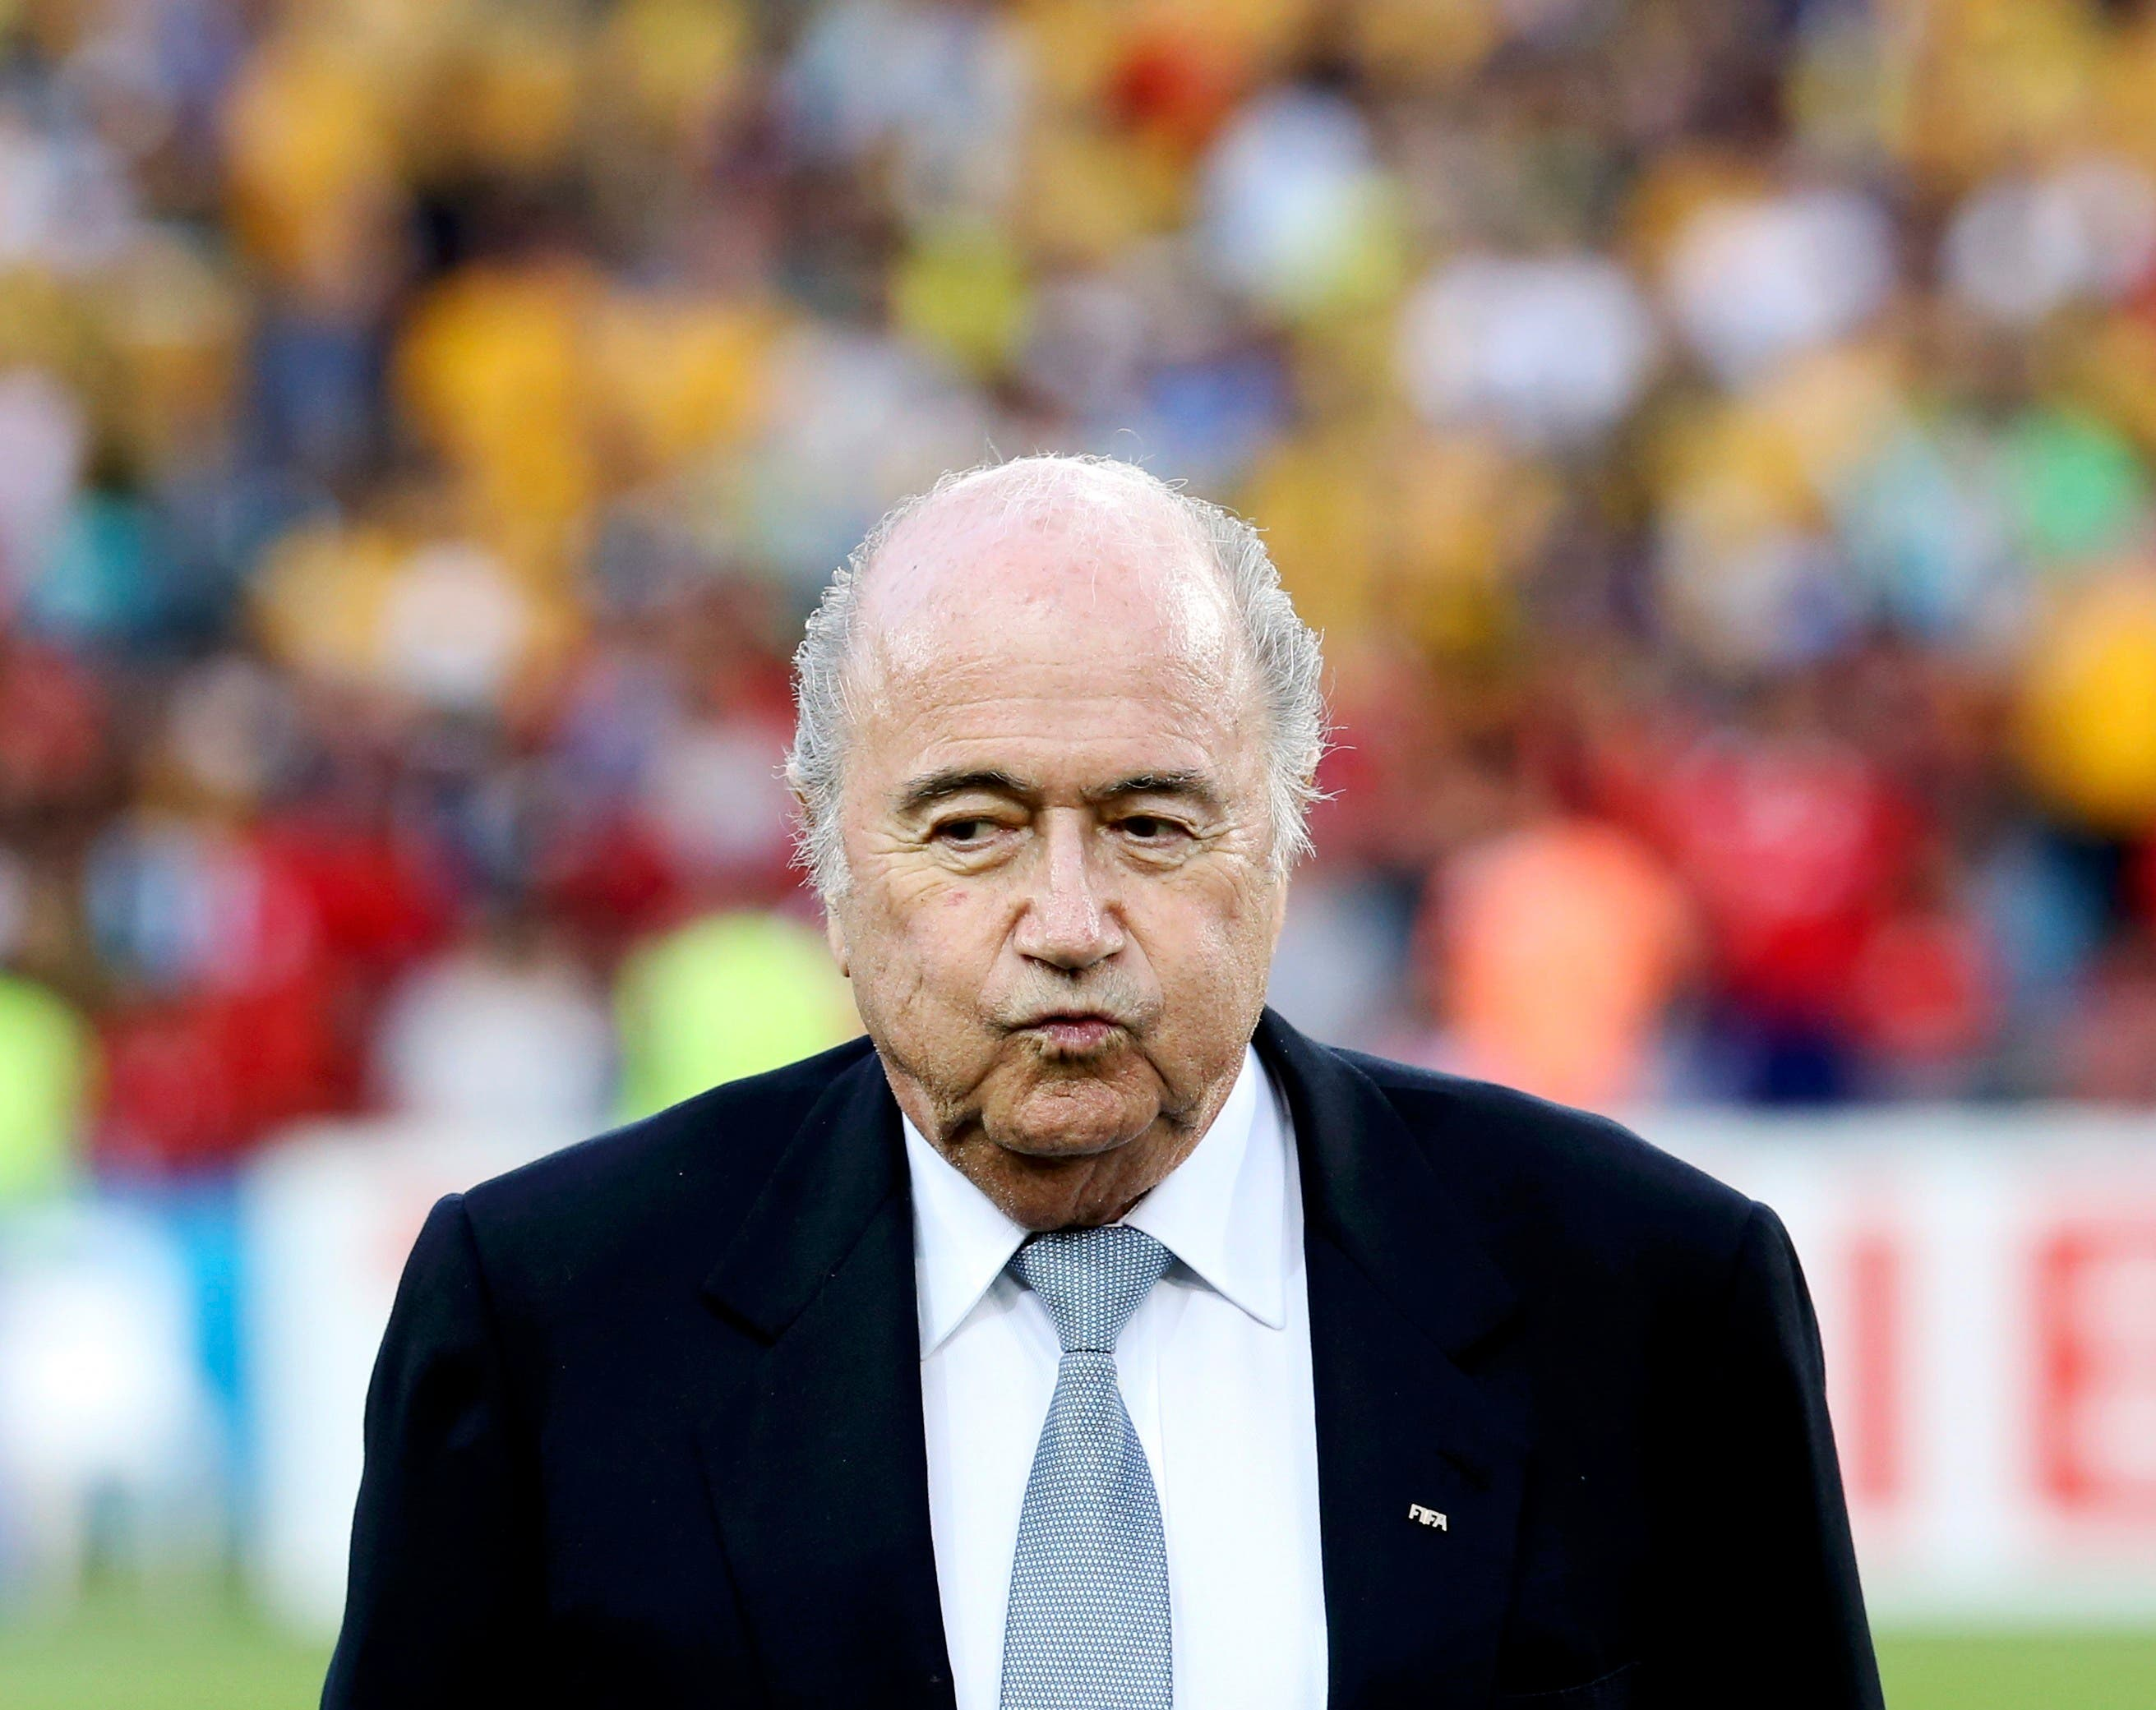 FIFA President Sepp Blatter reacts before the Asian Cup final soccer match between South Korea and Australia at the Stadium Australia in Sydney January 31, 2015. REUTERS